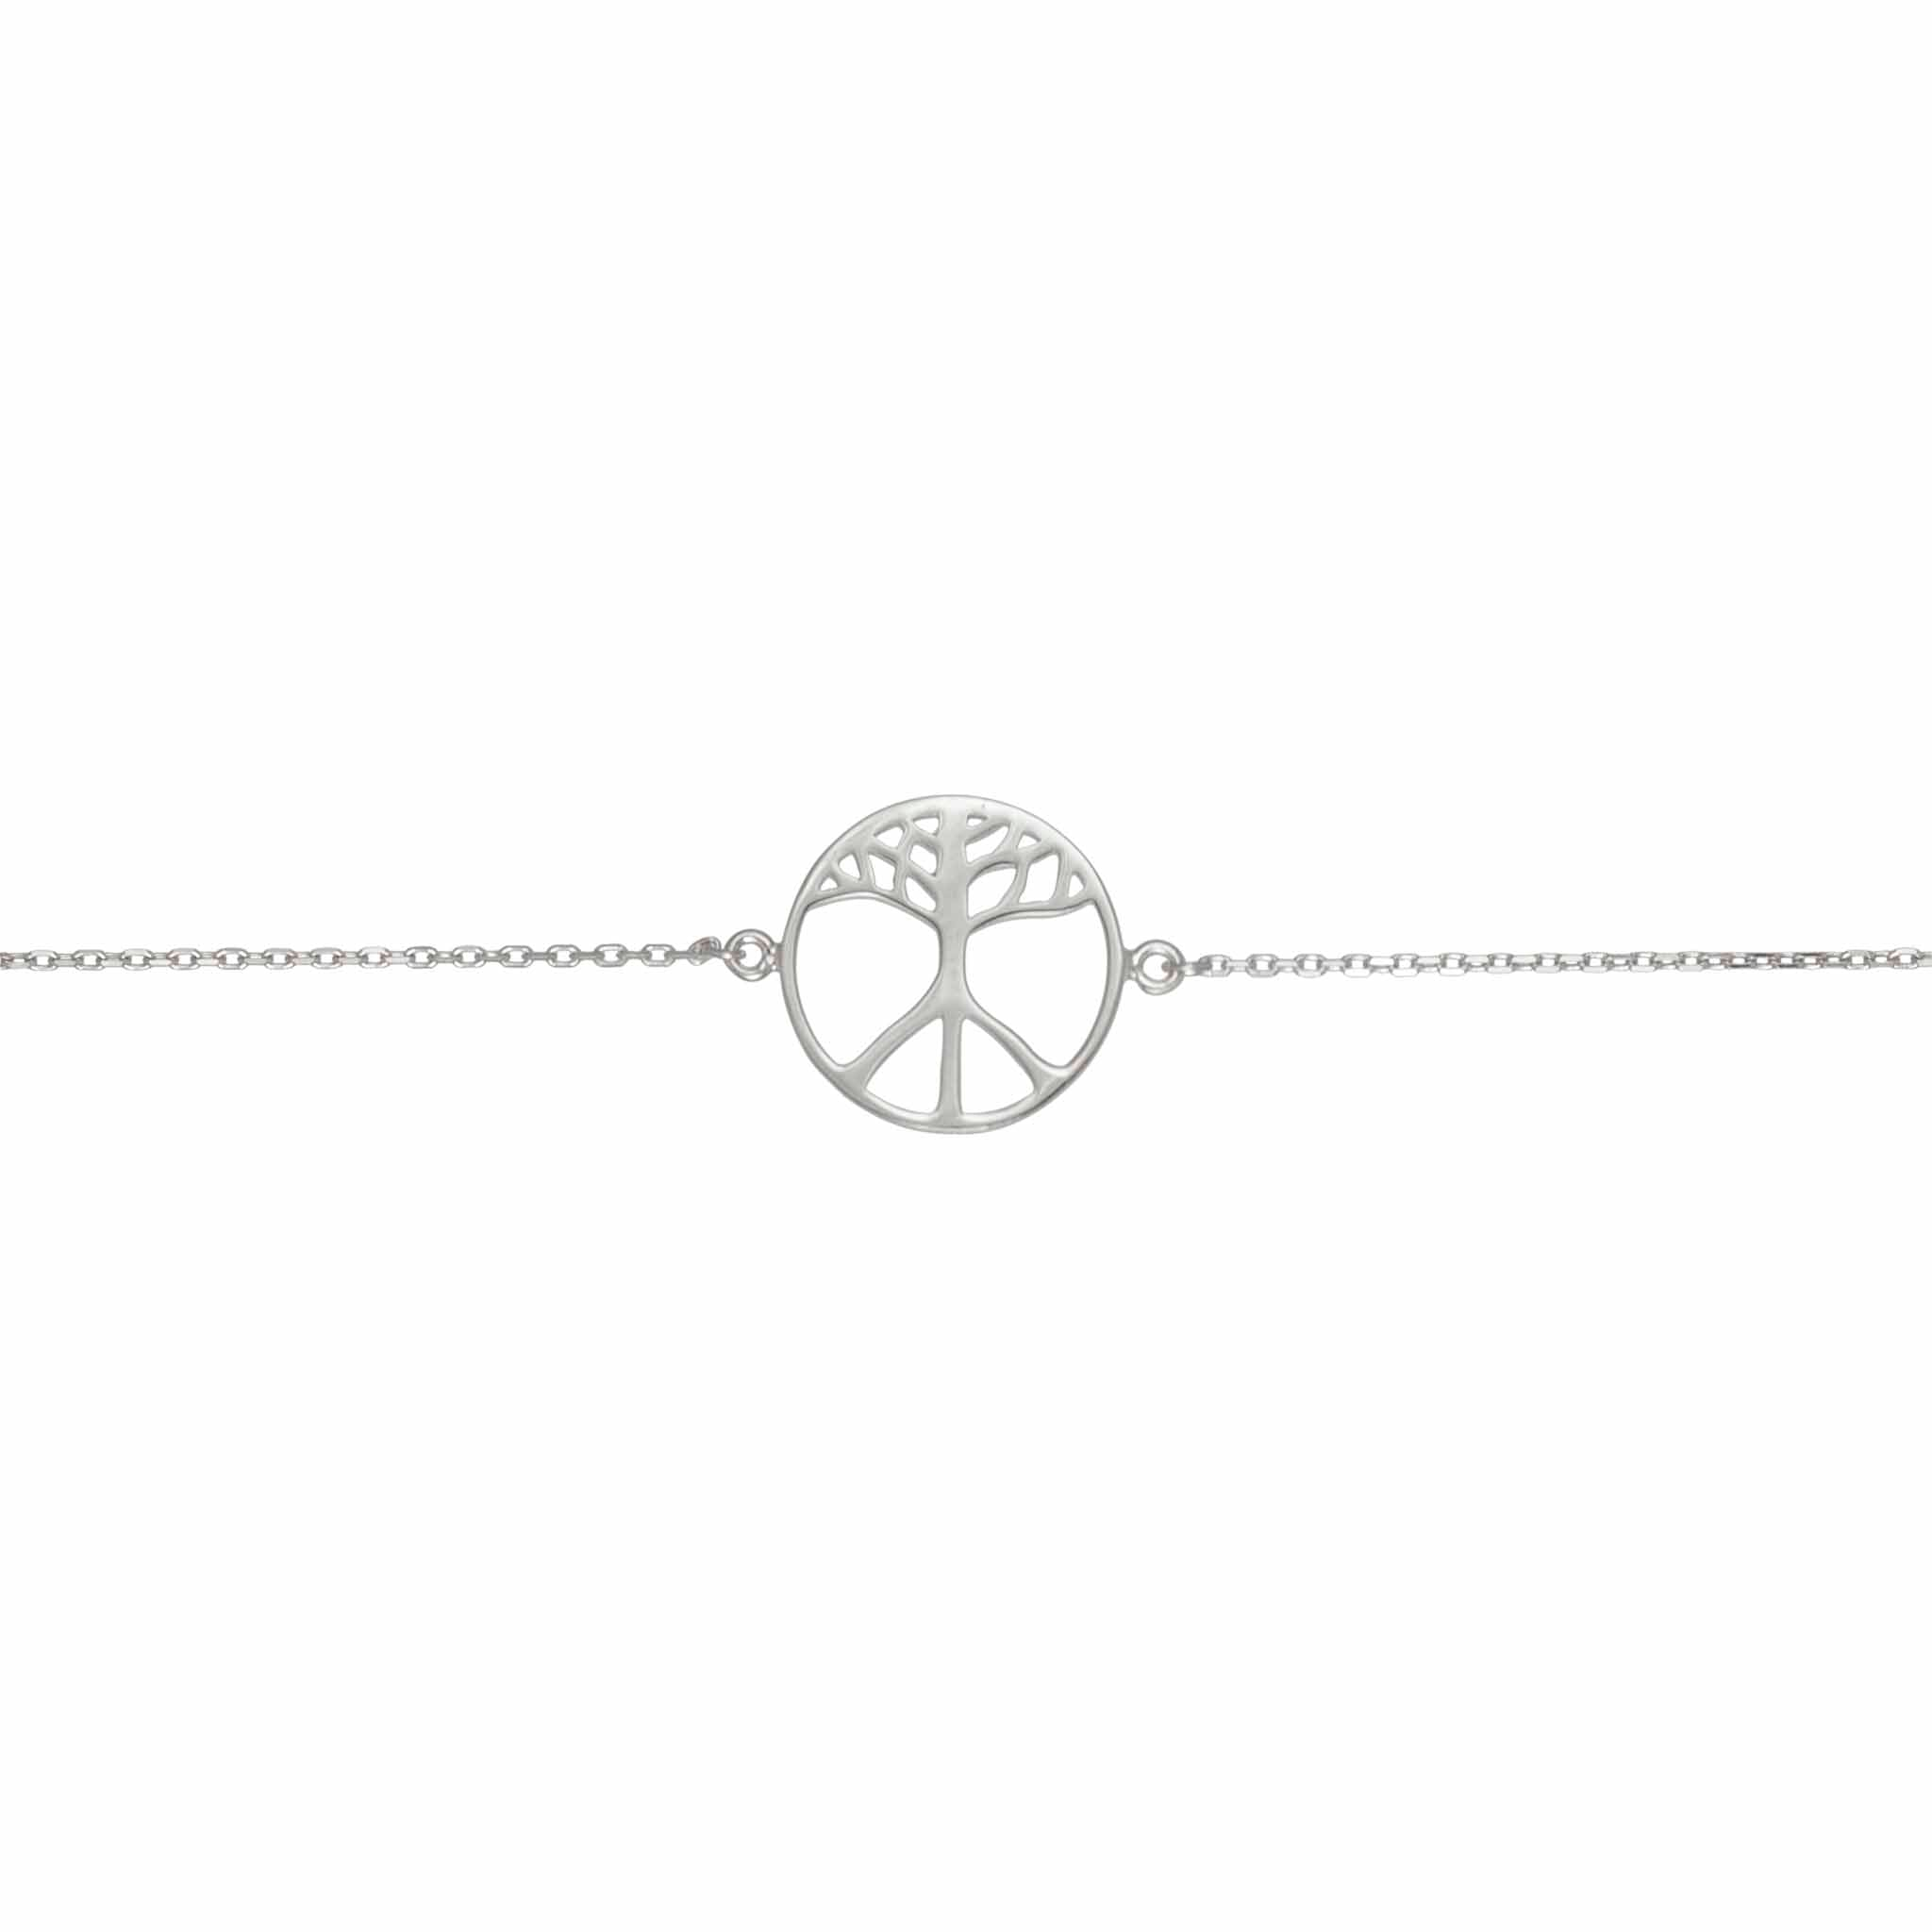 BON HOPE - One Earth Silver Bracelet. The symbol is a merge of the tree of life and the classic peace symbol. 100% recycled silver jewelry ethically made in Bali.